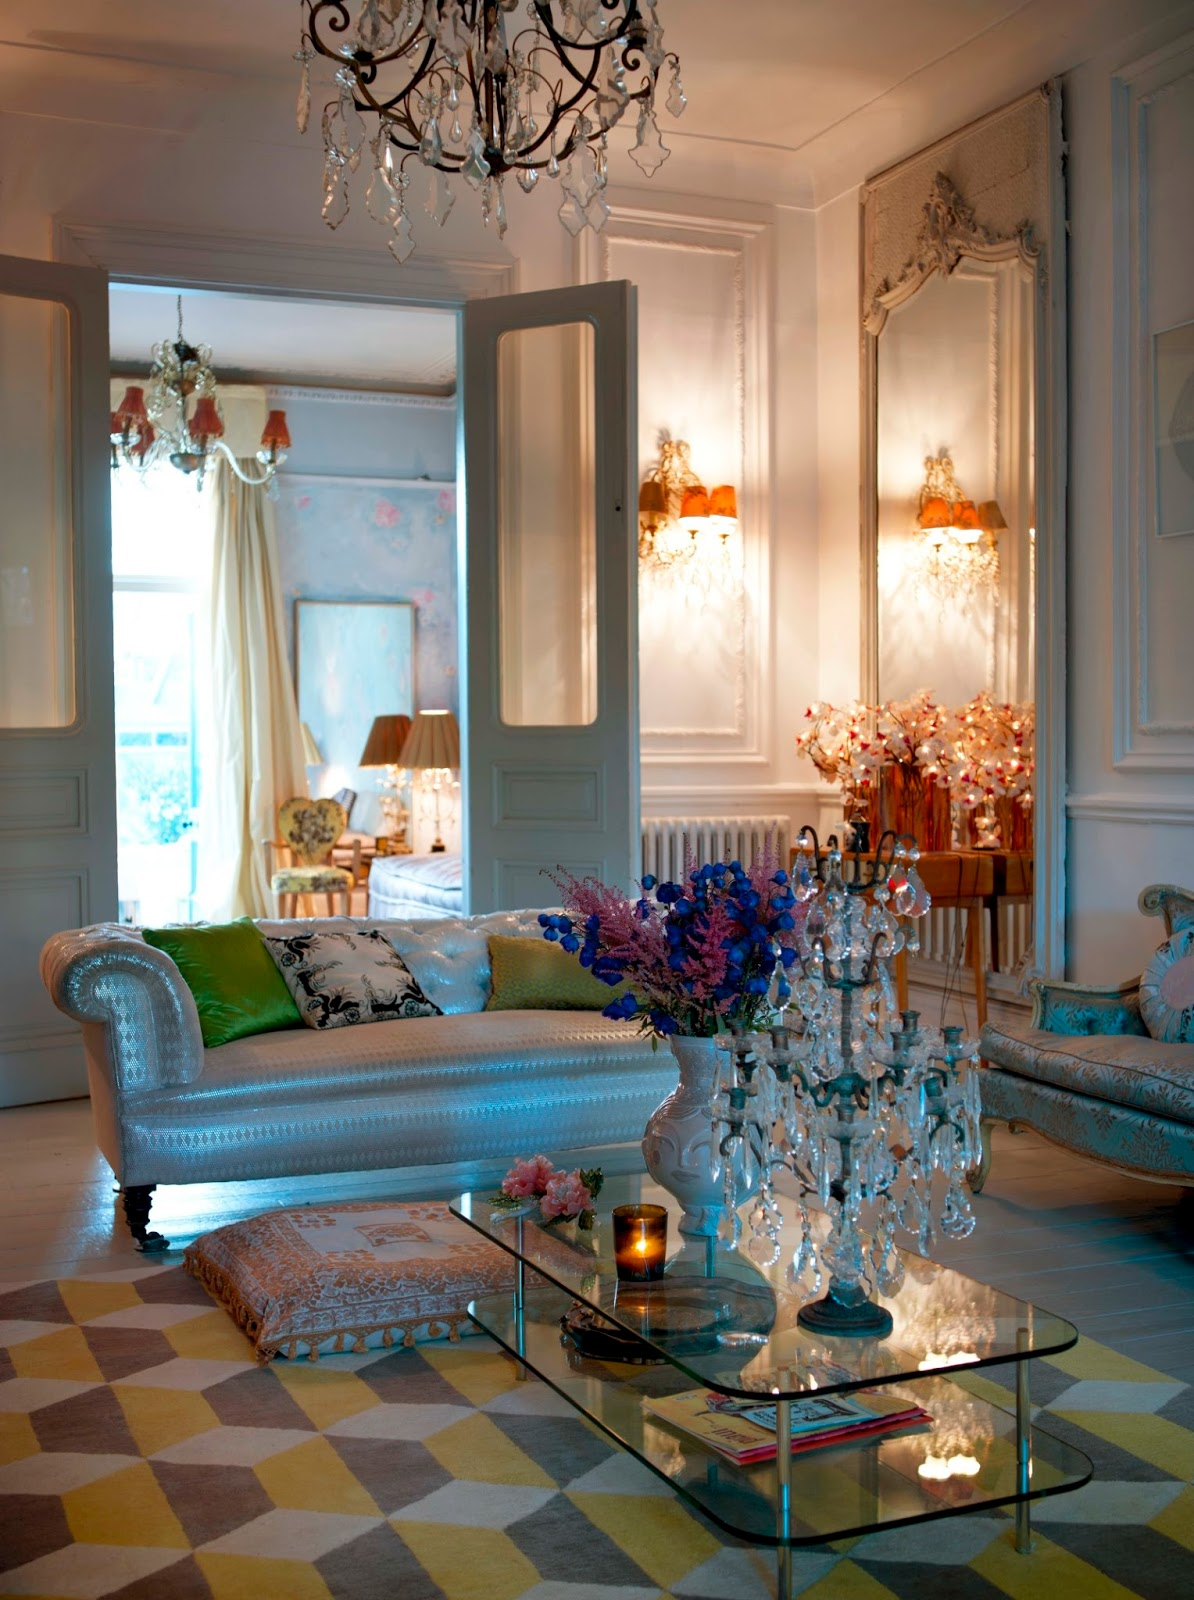 Decor inspiration at home with marianne cotterill interior stylist by debi treloar